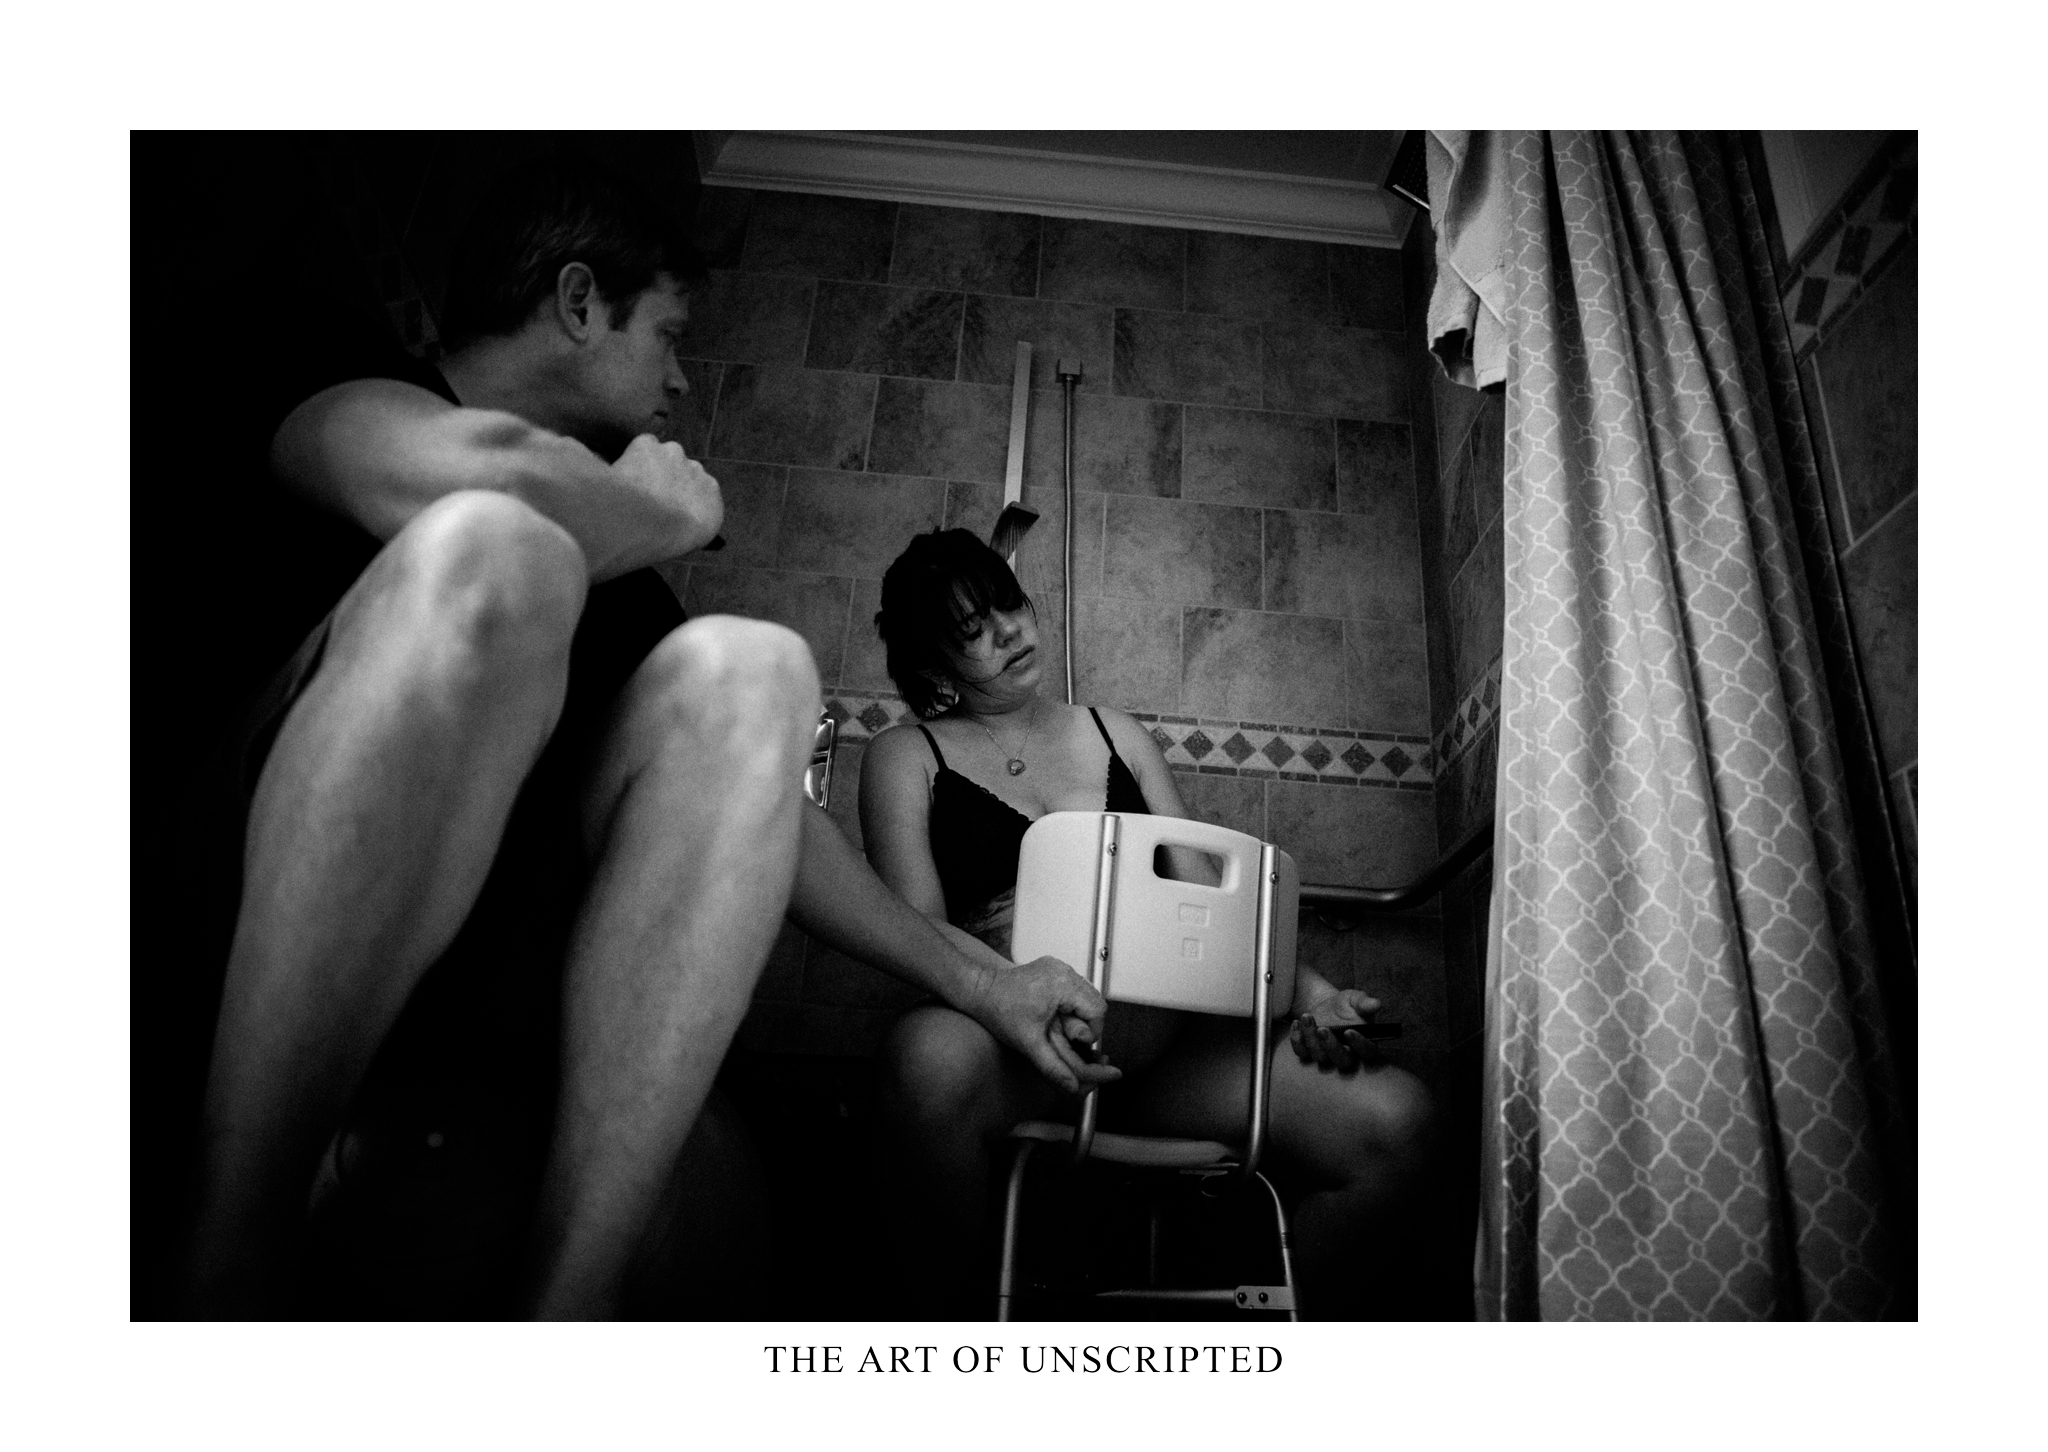 2017-06-10_095013__THE ART OF UNSCRIPTED_SPRINGFIELD MO_BIRTH PHOTOGRAPHER_ DOCUMENTARY_STORYTELLING_417_PHOTOGRAPHER